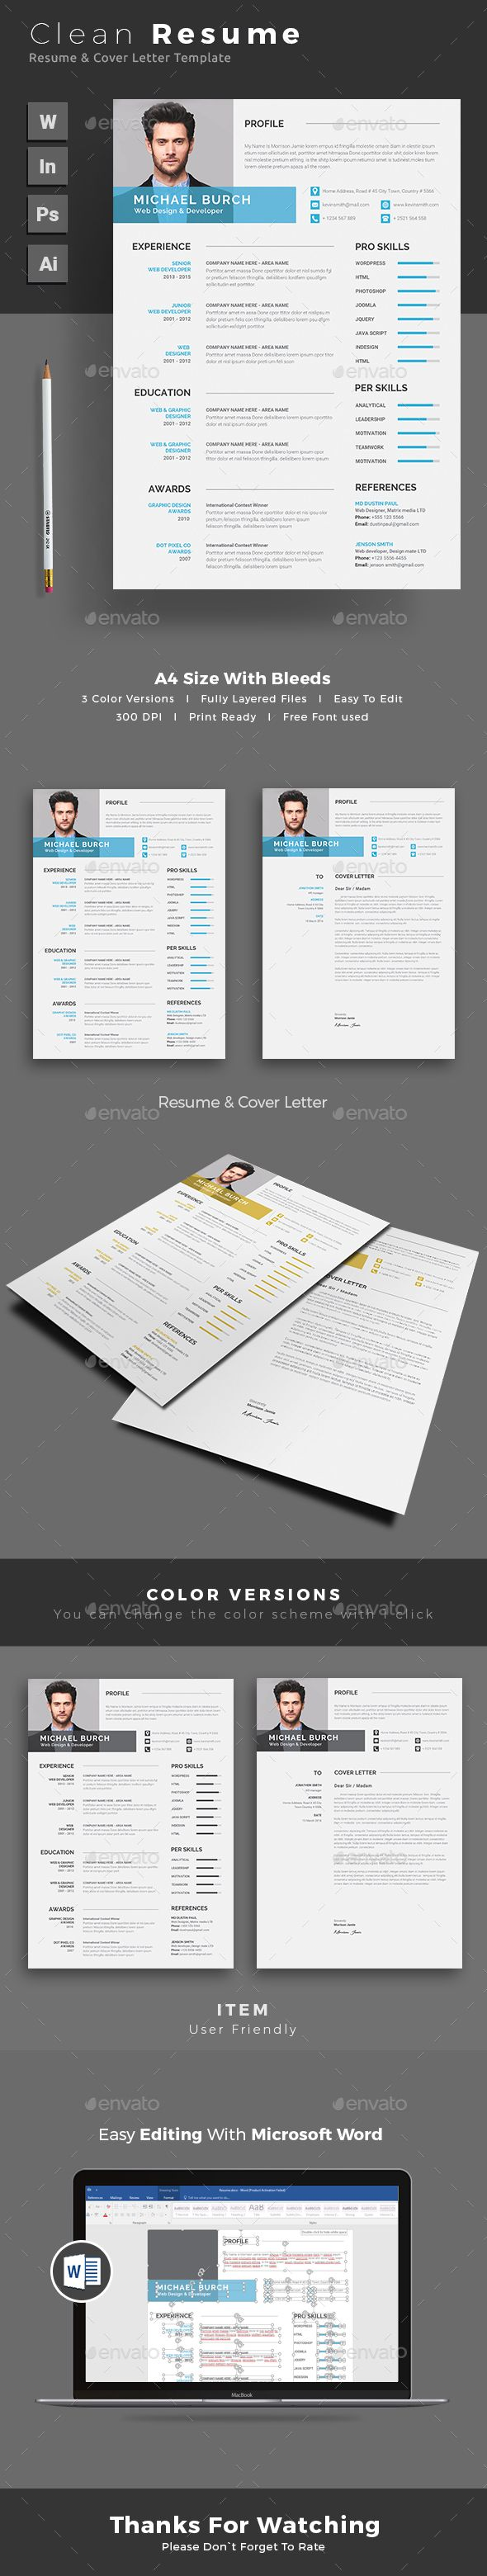 resume resumes stationery download here